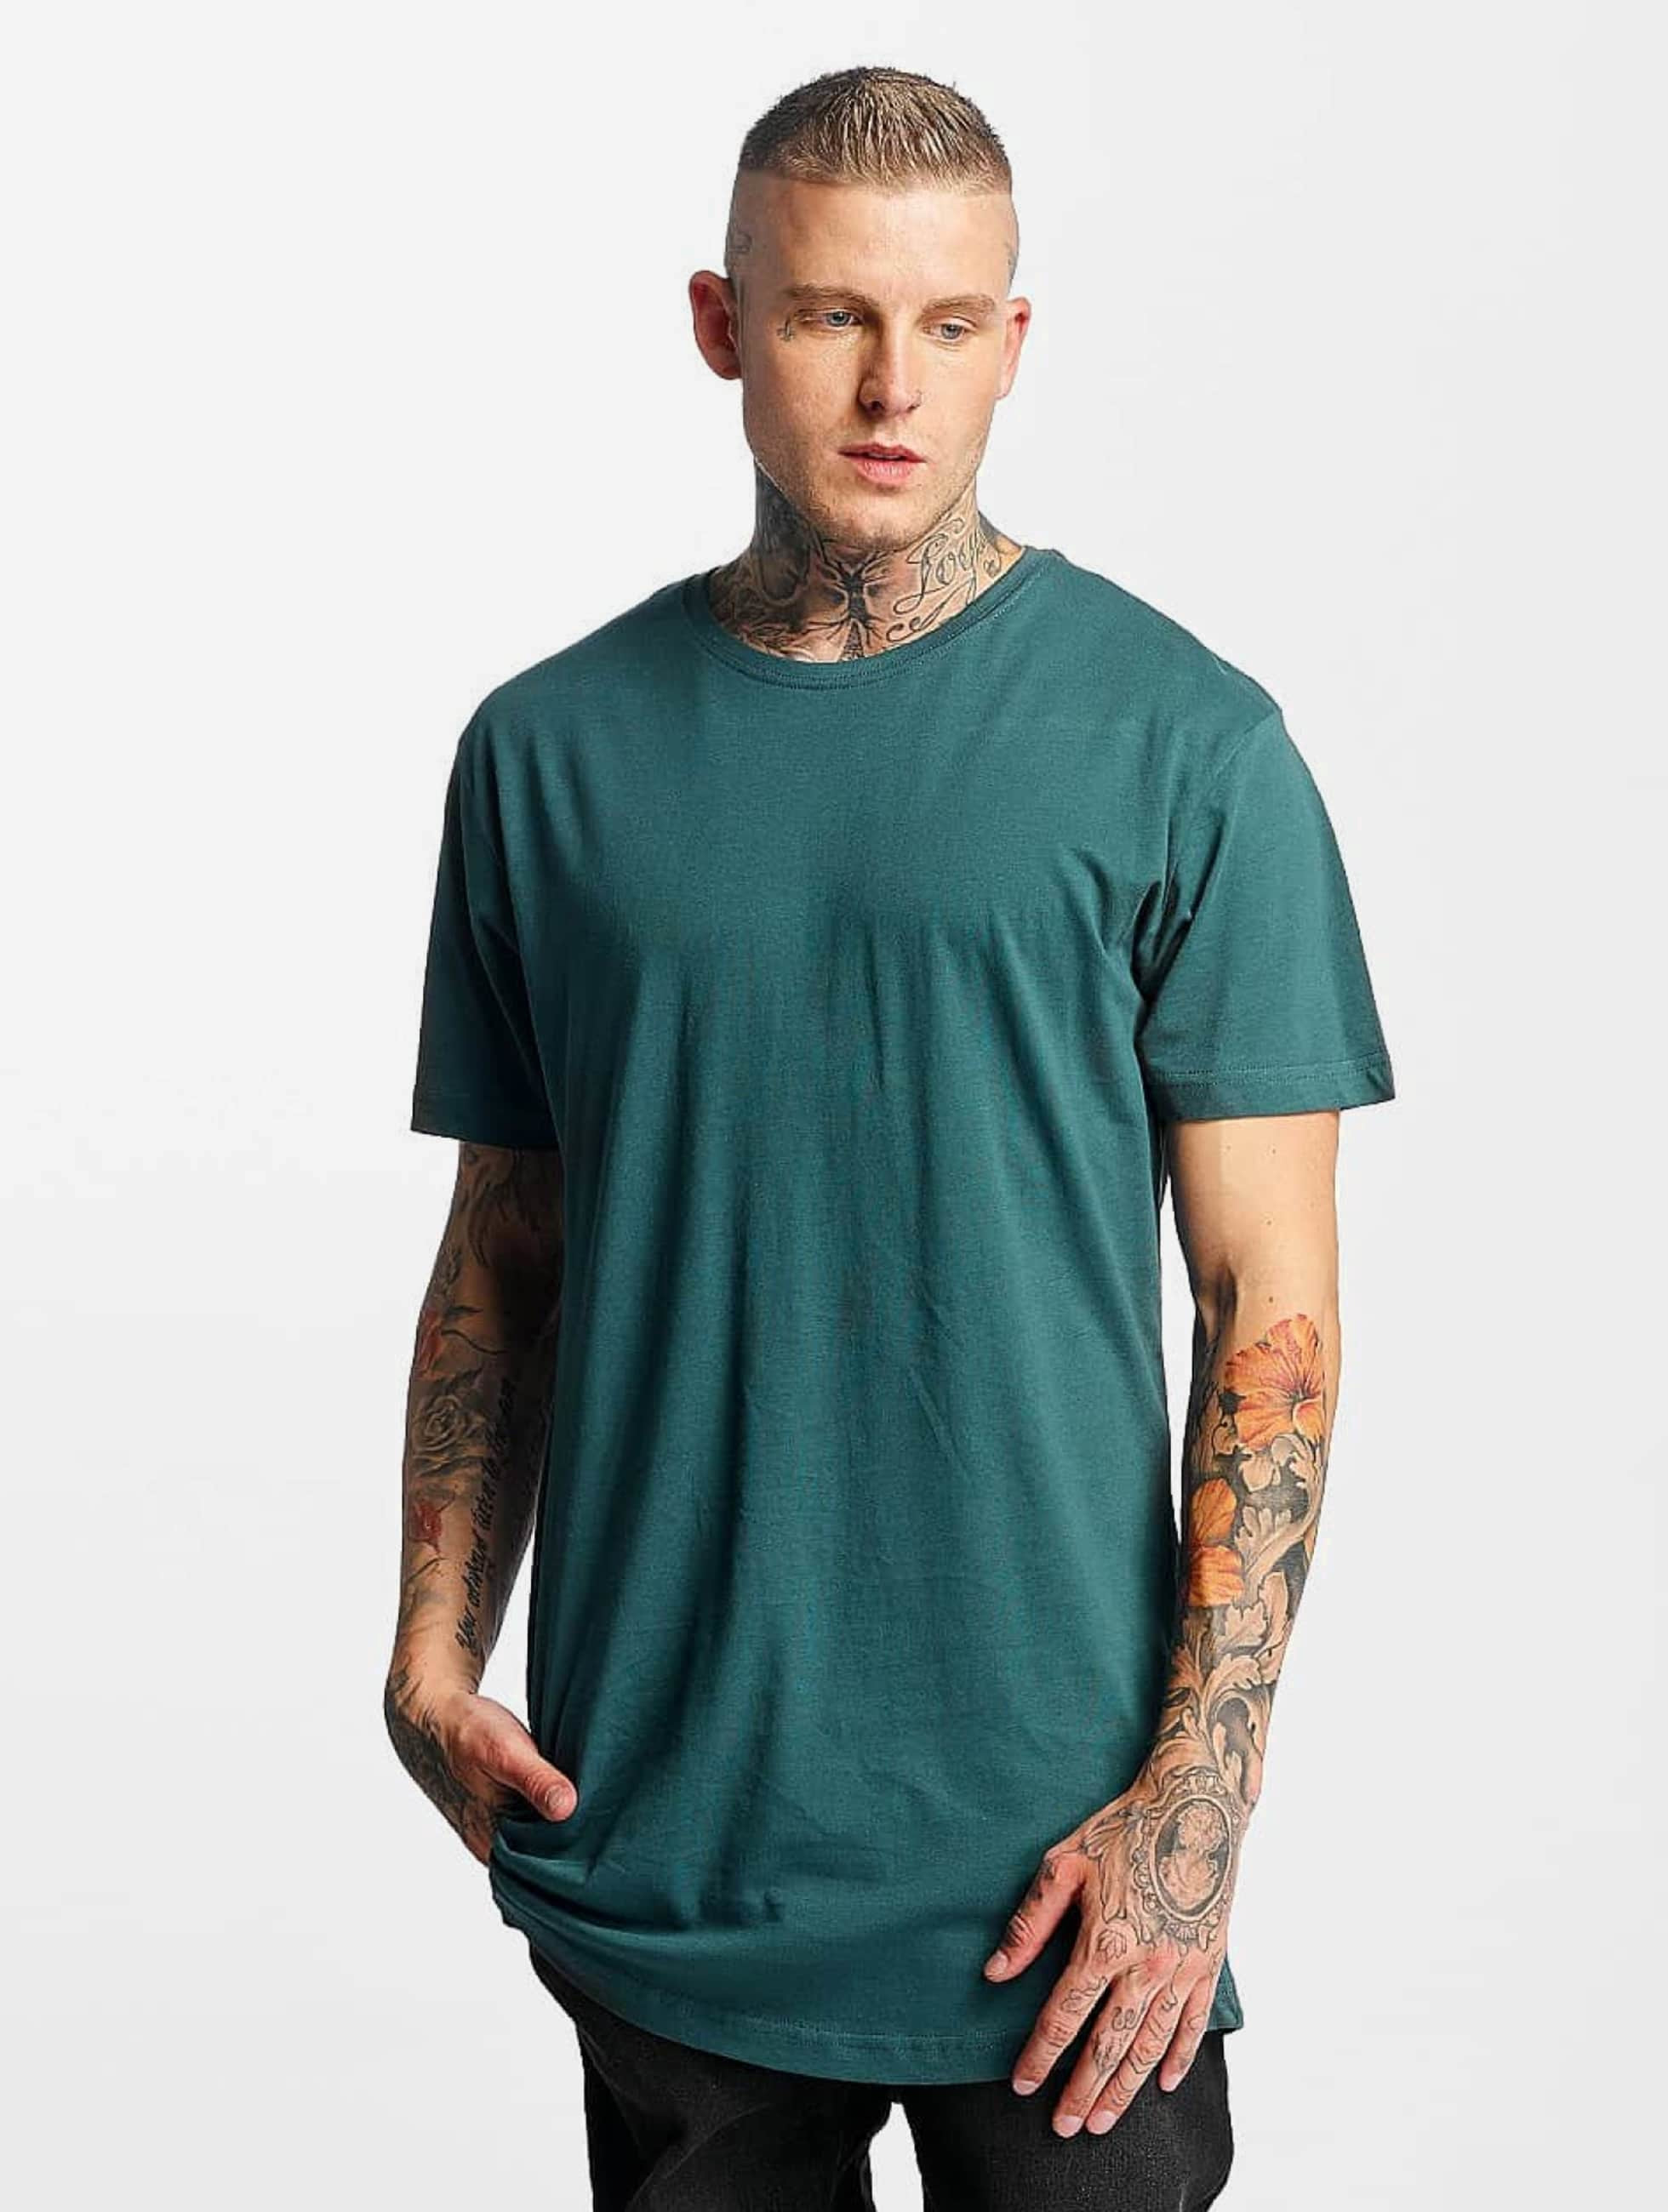 Urban Classics Tall Tees Shaped Long turkusowy